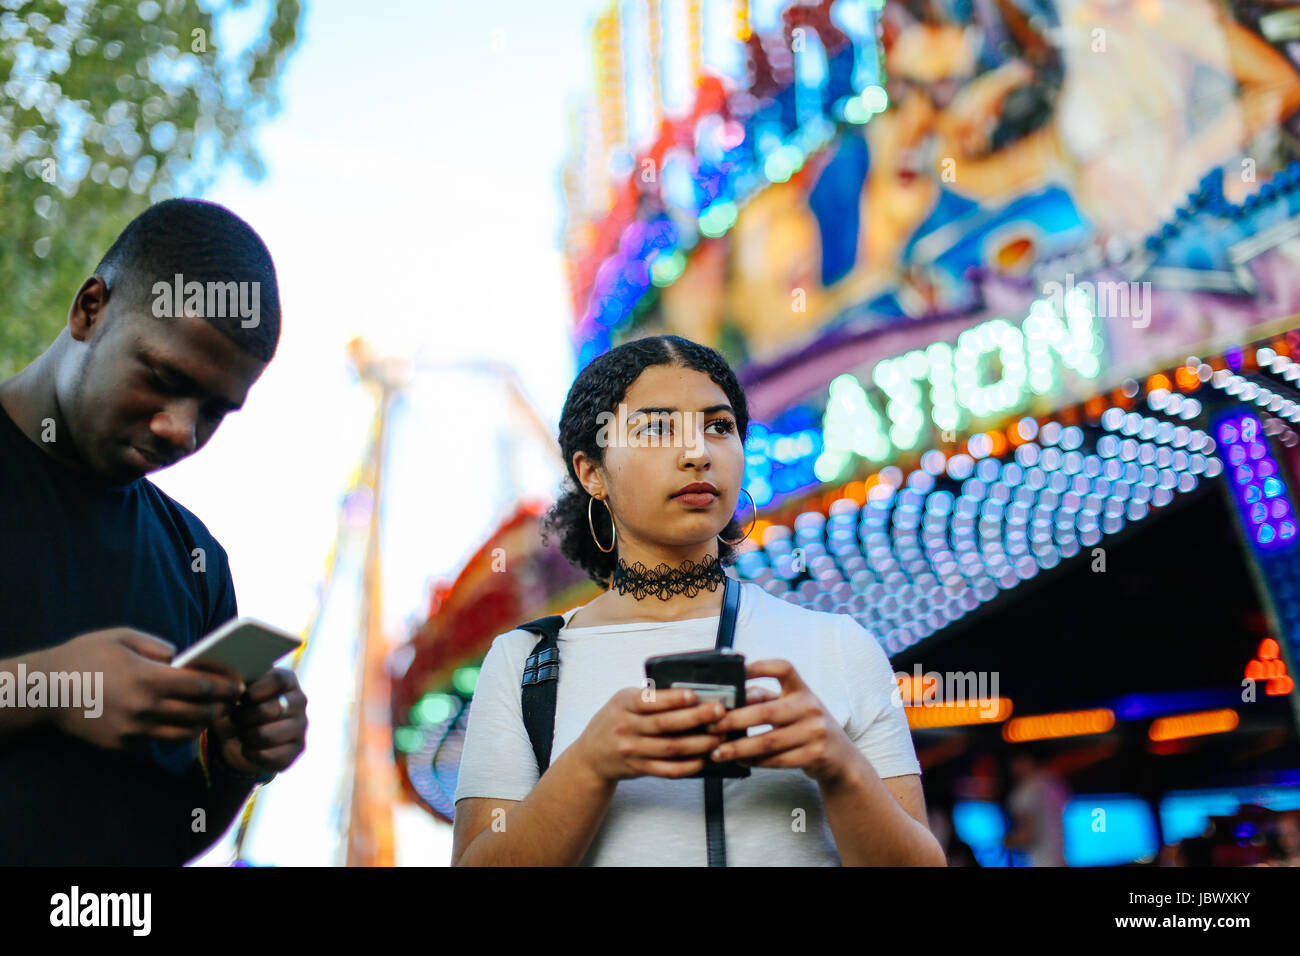 Two friends at funfair, holding smartphones - Stock Image